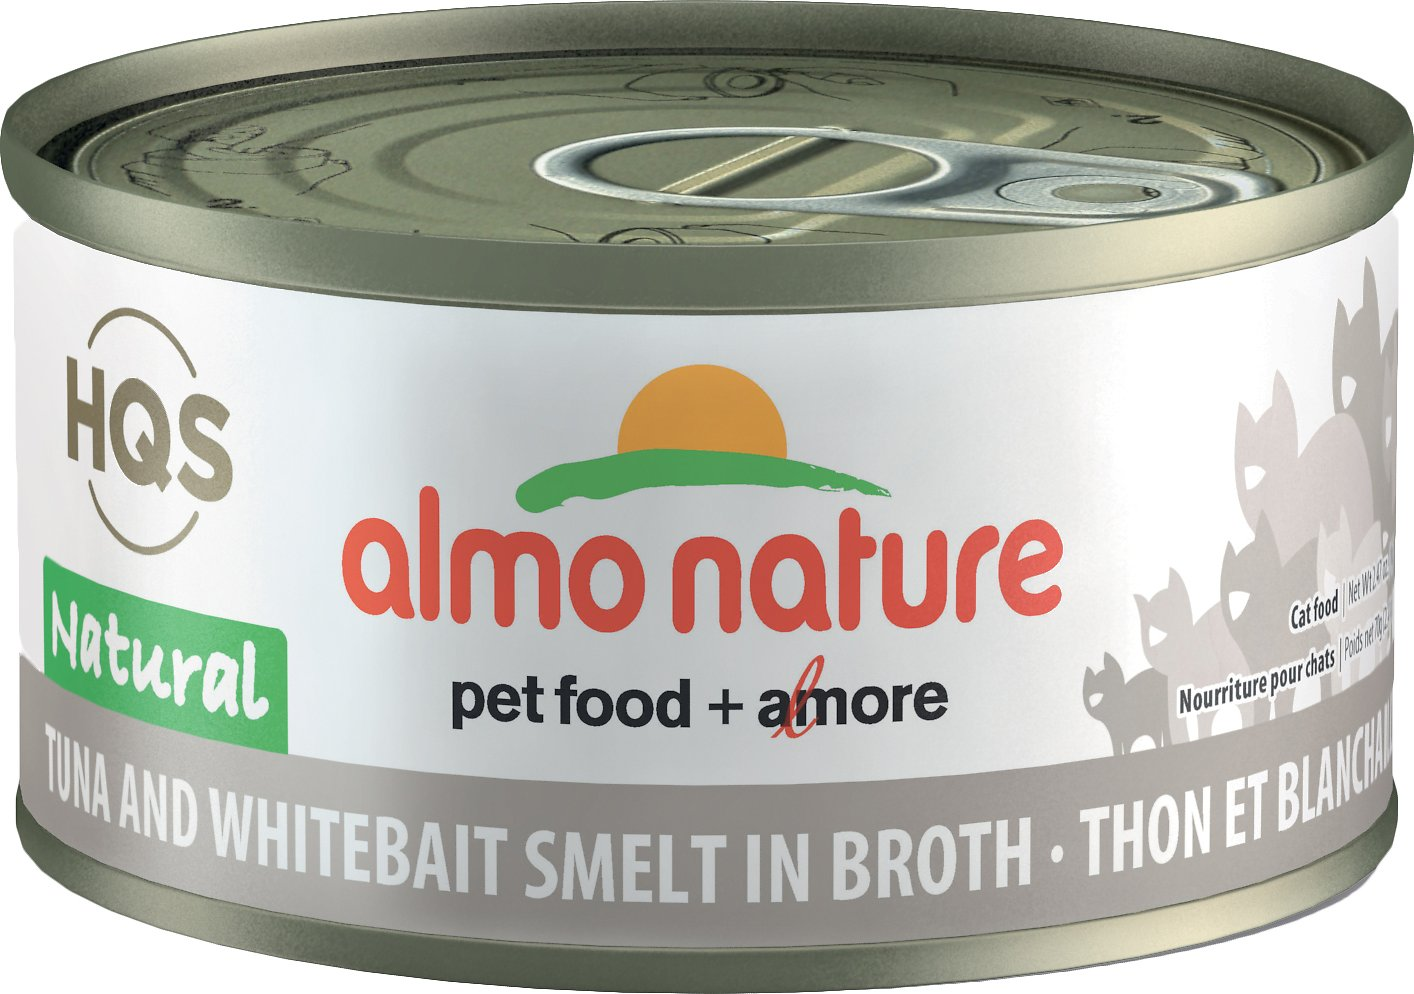 Almo Nature HQS Natural Tuna & Whitebait Smelt in Broth Grain-Free Wet Cat Food Image